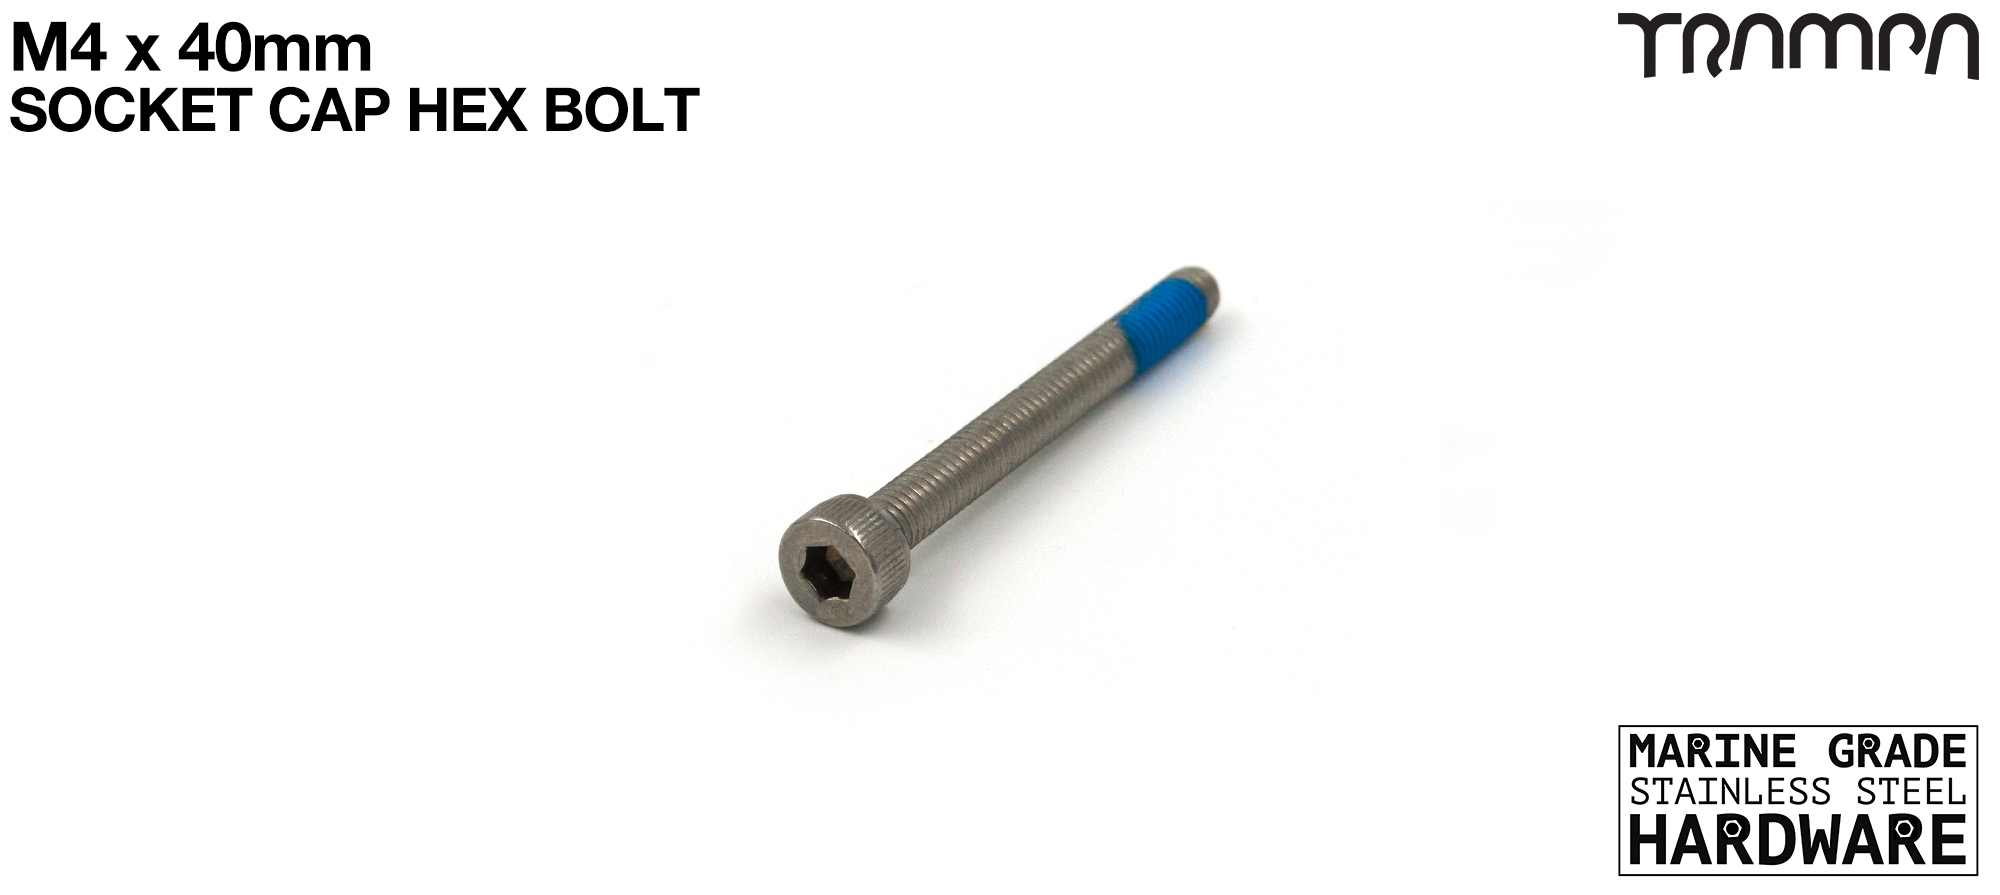 M4 x 40mm Socket Capped Bolt - Marine Grade Stainless steel with locking paste